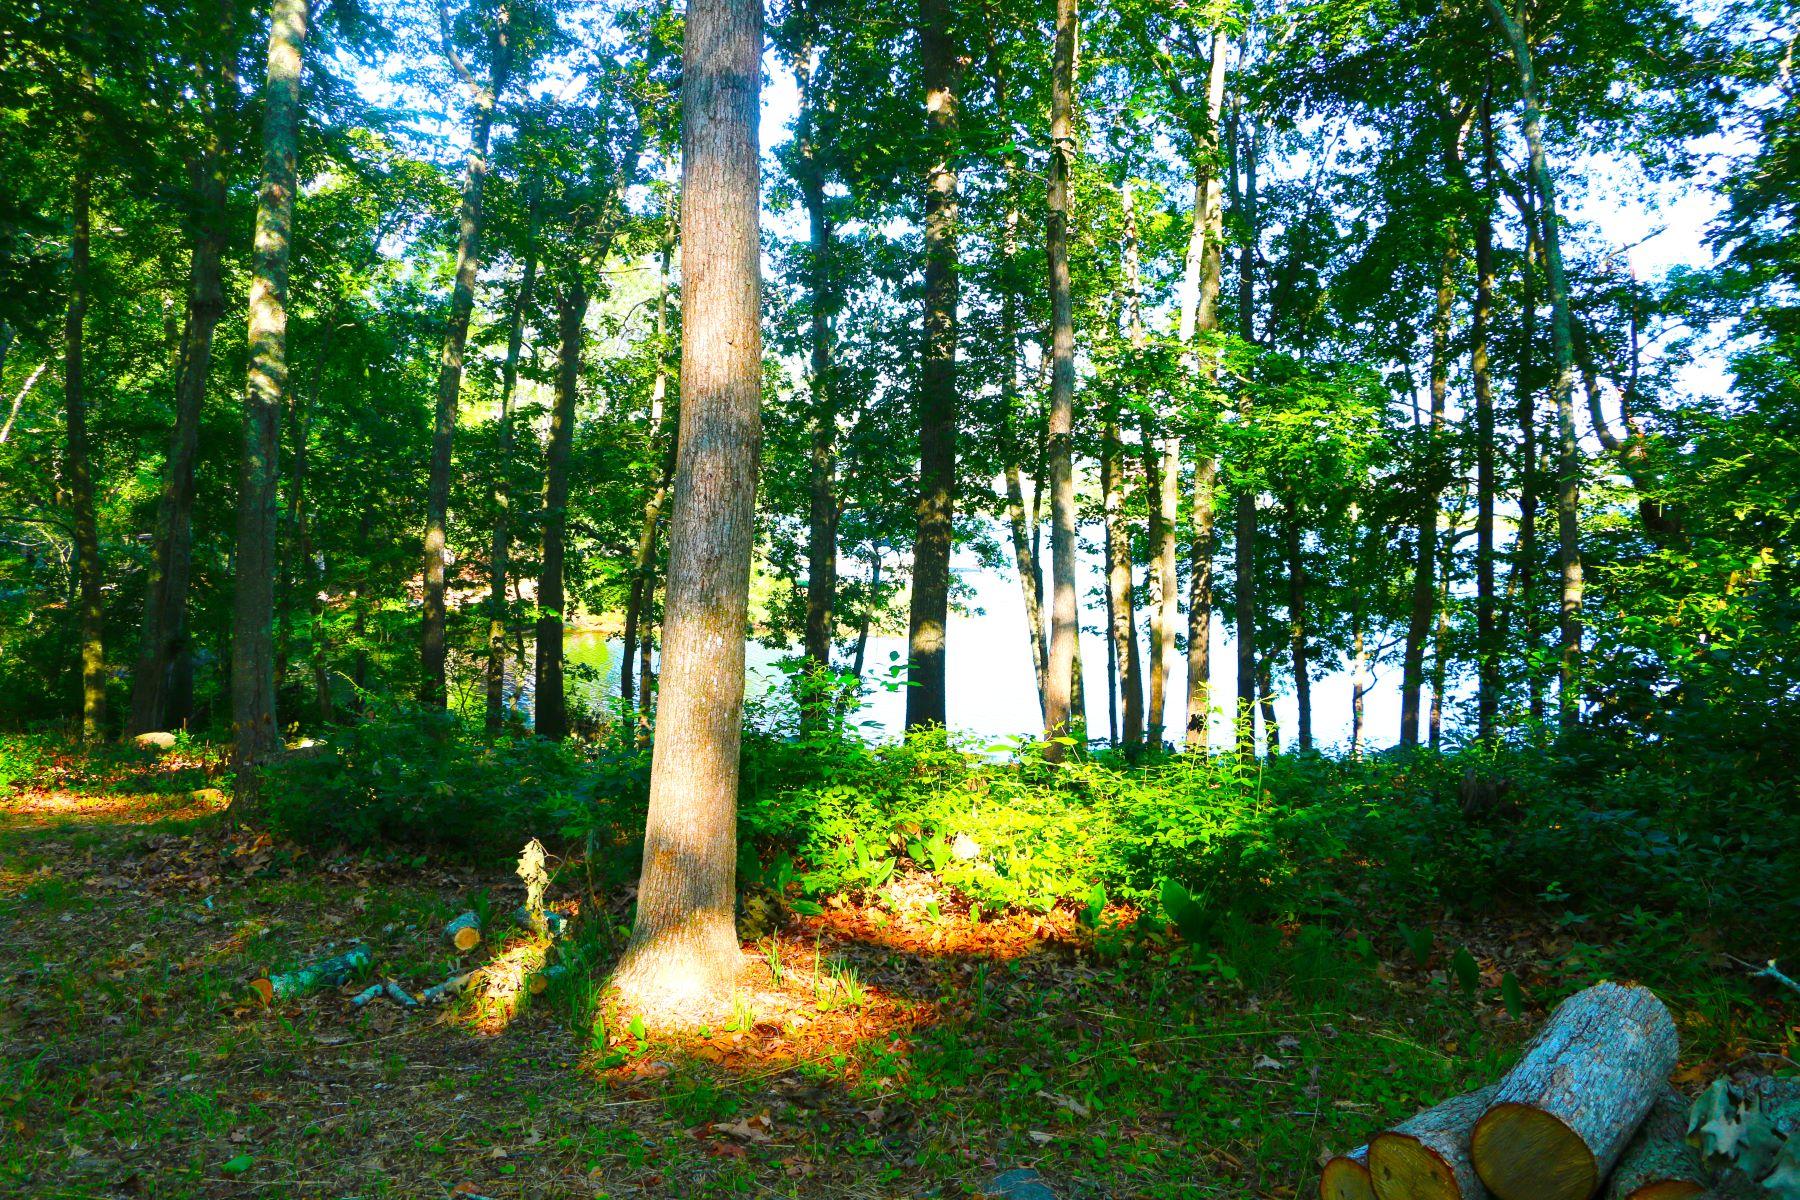 Terreno por un Venta en Waterfront Building Lot 28 Money Point Road, Stonington, Connecticut, 06355 Estados Unidos